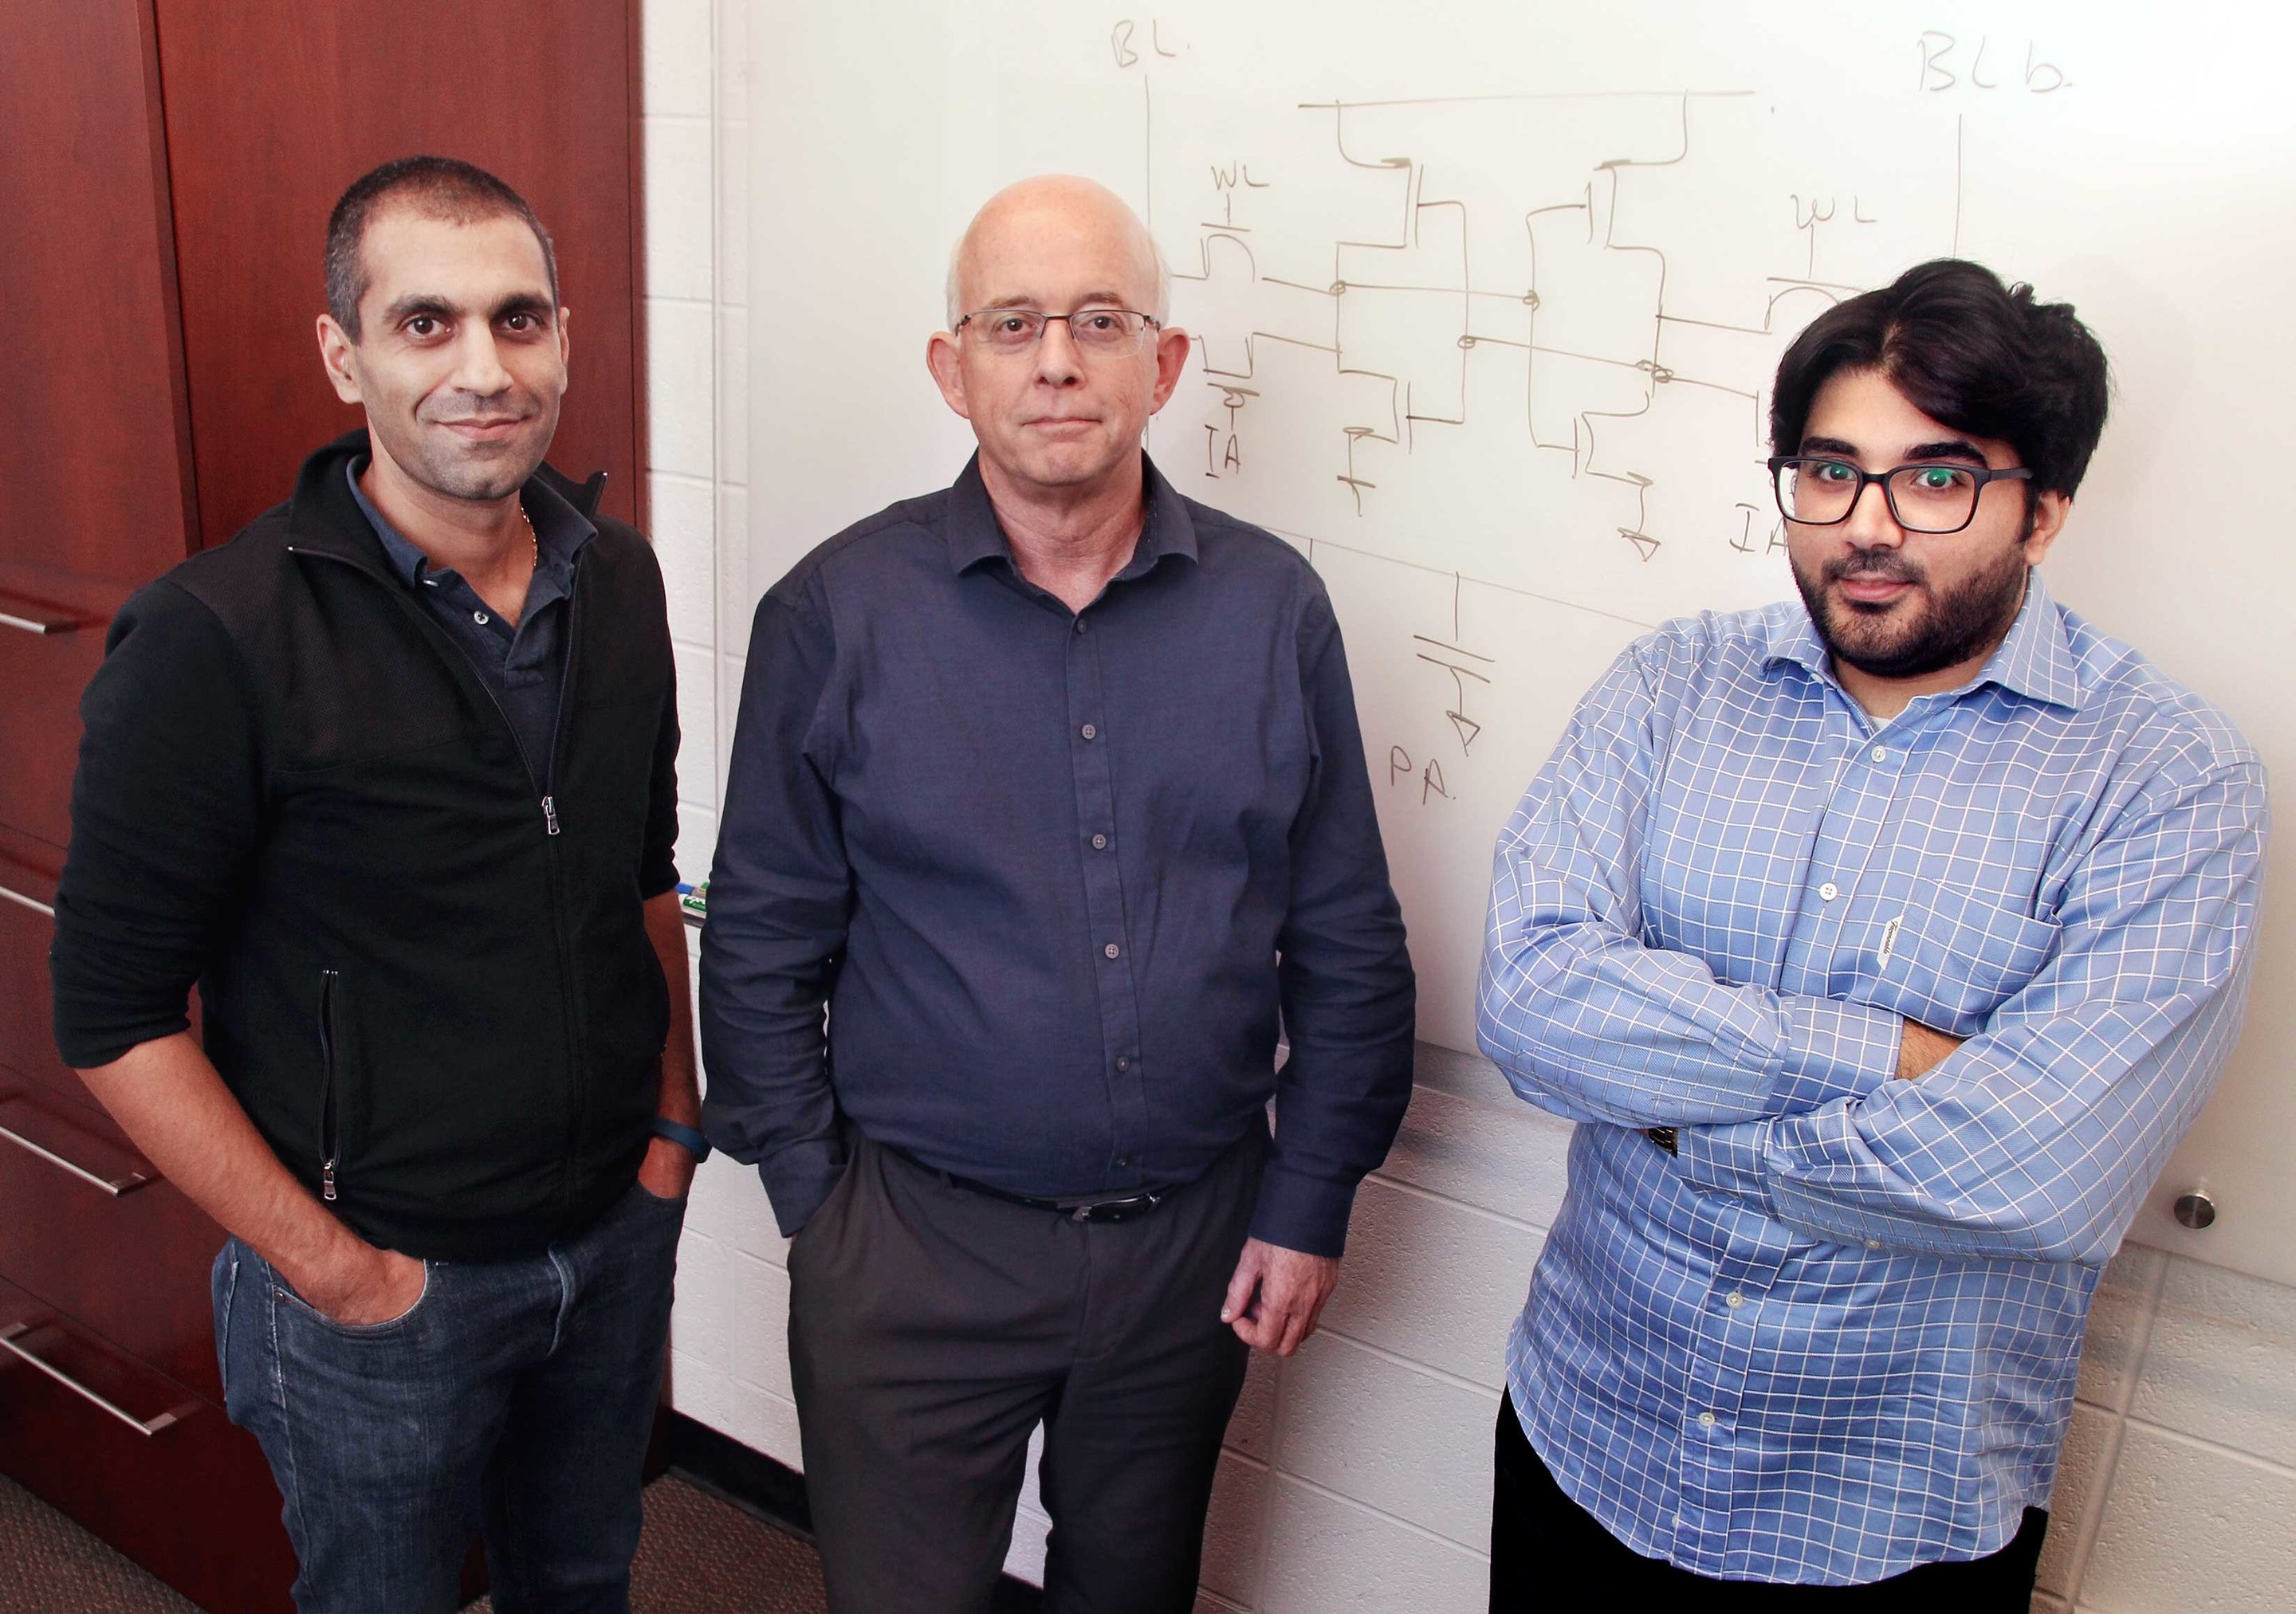 Chip ramps up artificial intelligence systems' per...